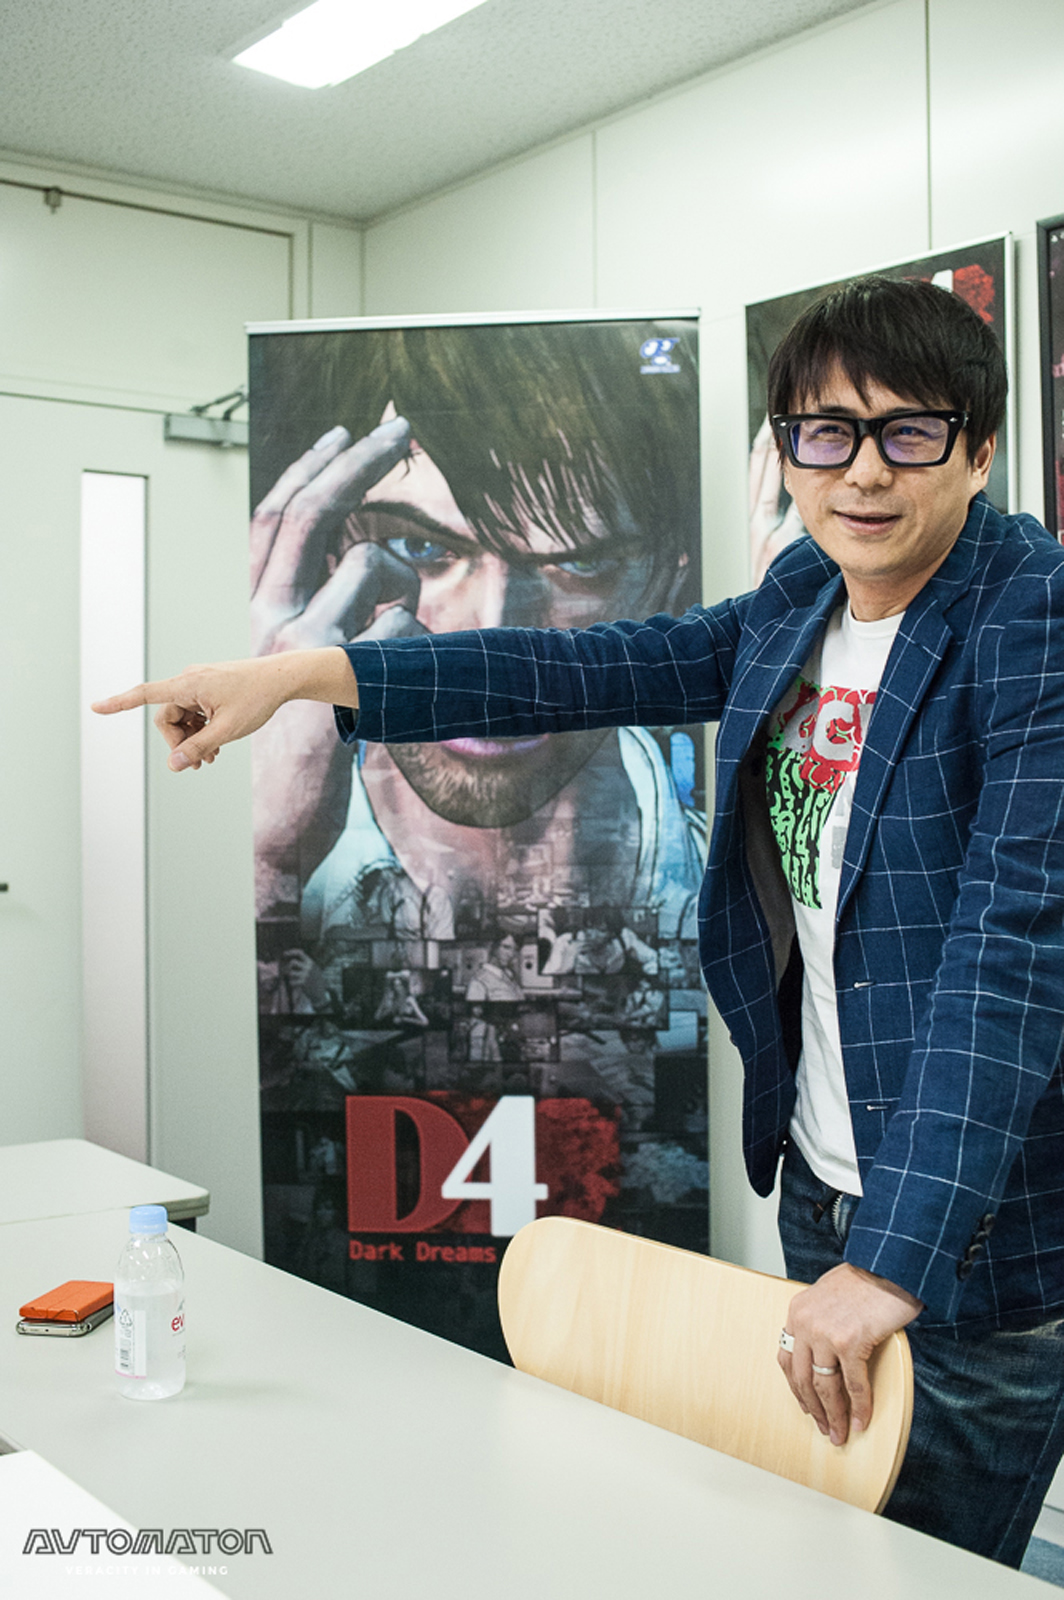 ask-swery-about-pc-d4-release-02-011